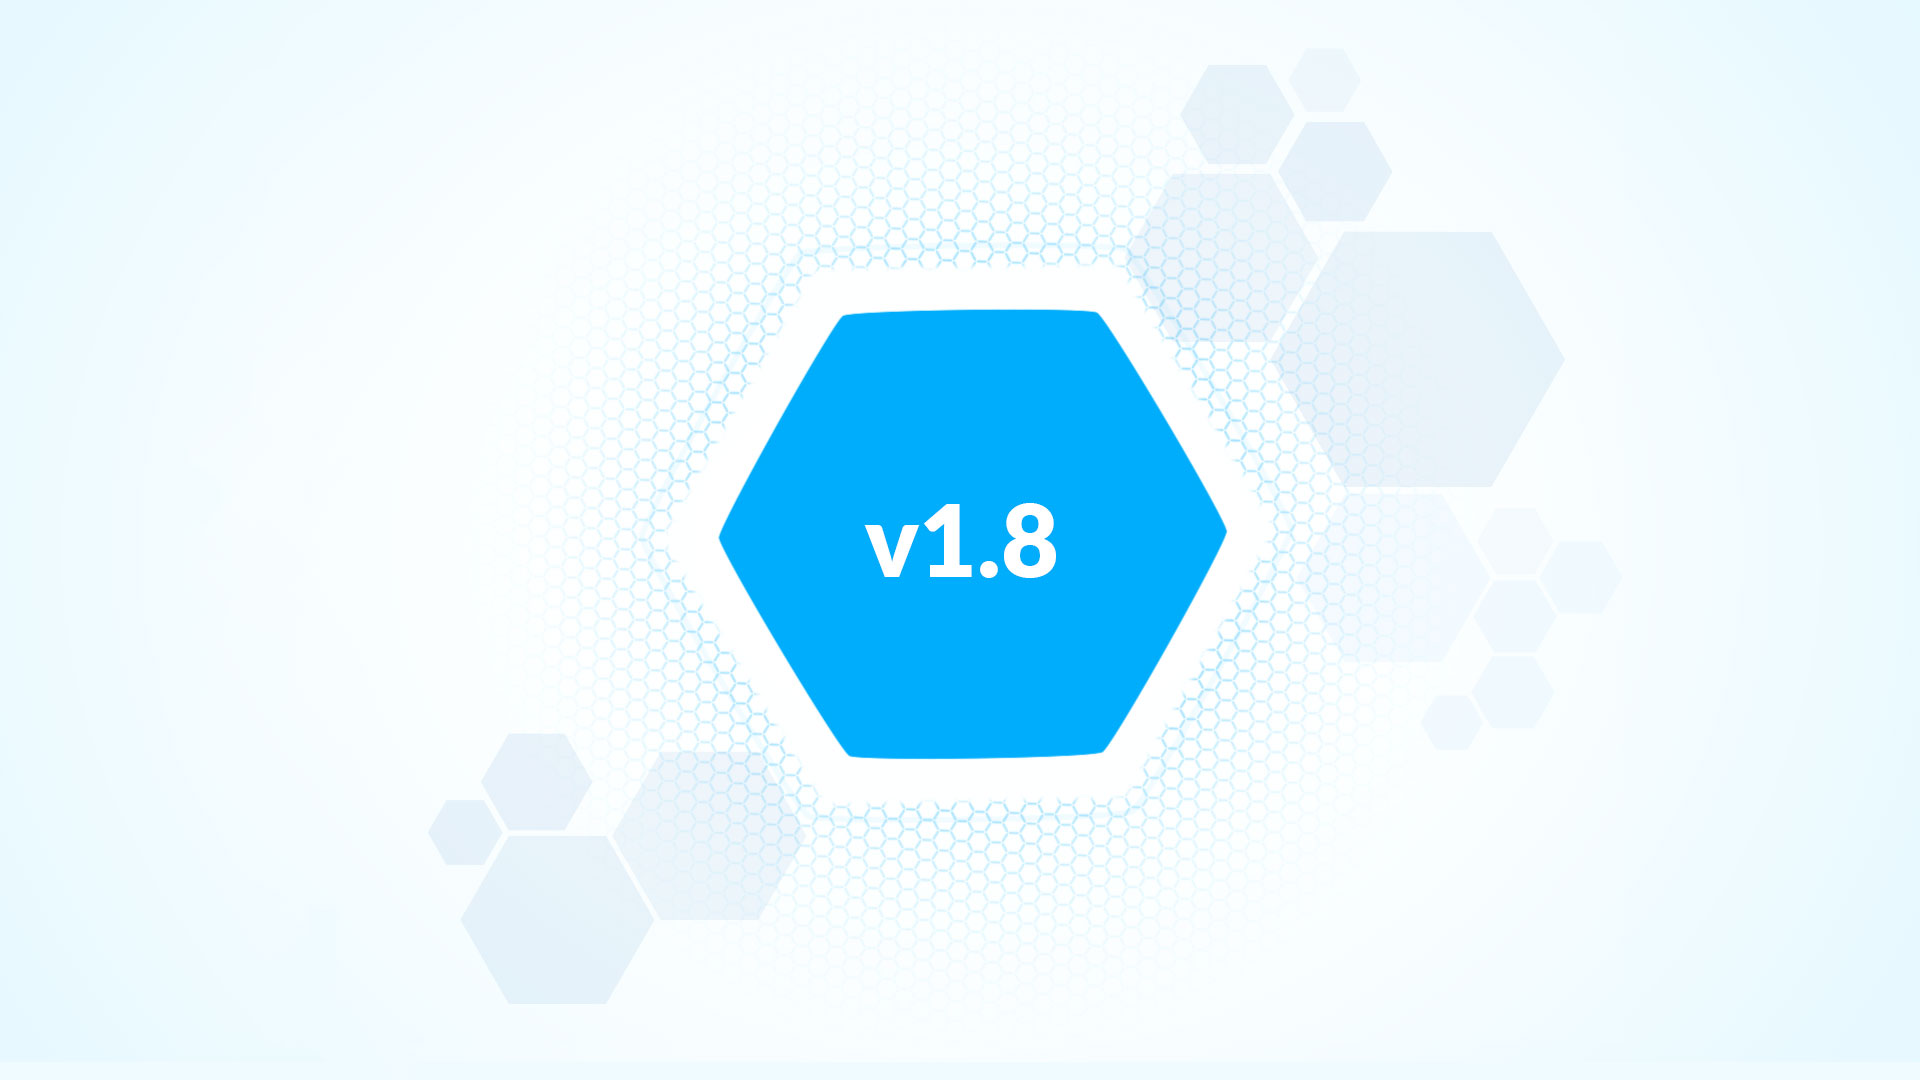 Eoiin Connect Release Notes v1.8